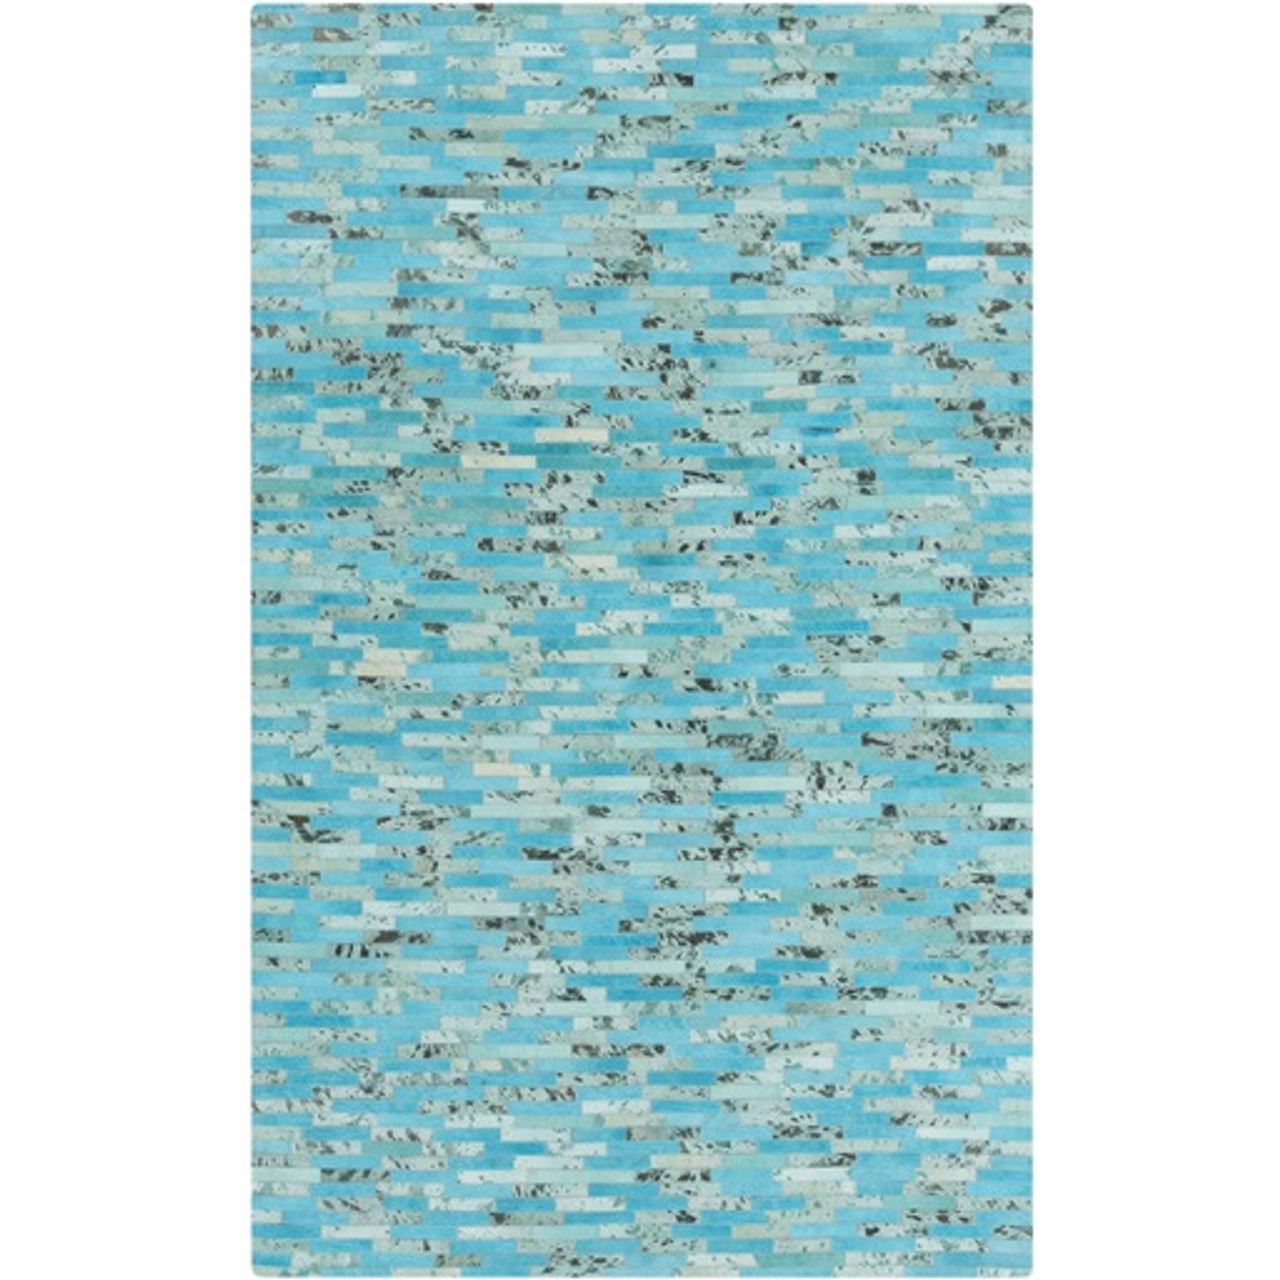 5' X 8' Abstract Ambiance Aqua Blue & Blue Green Leather